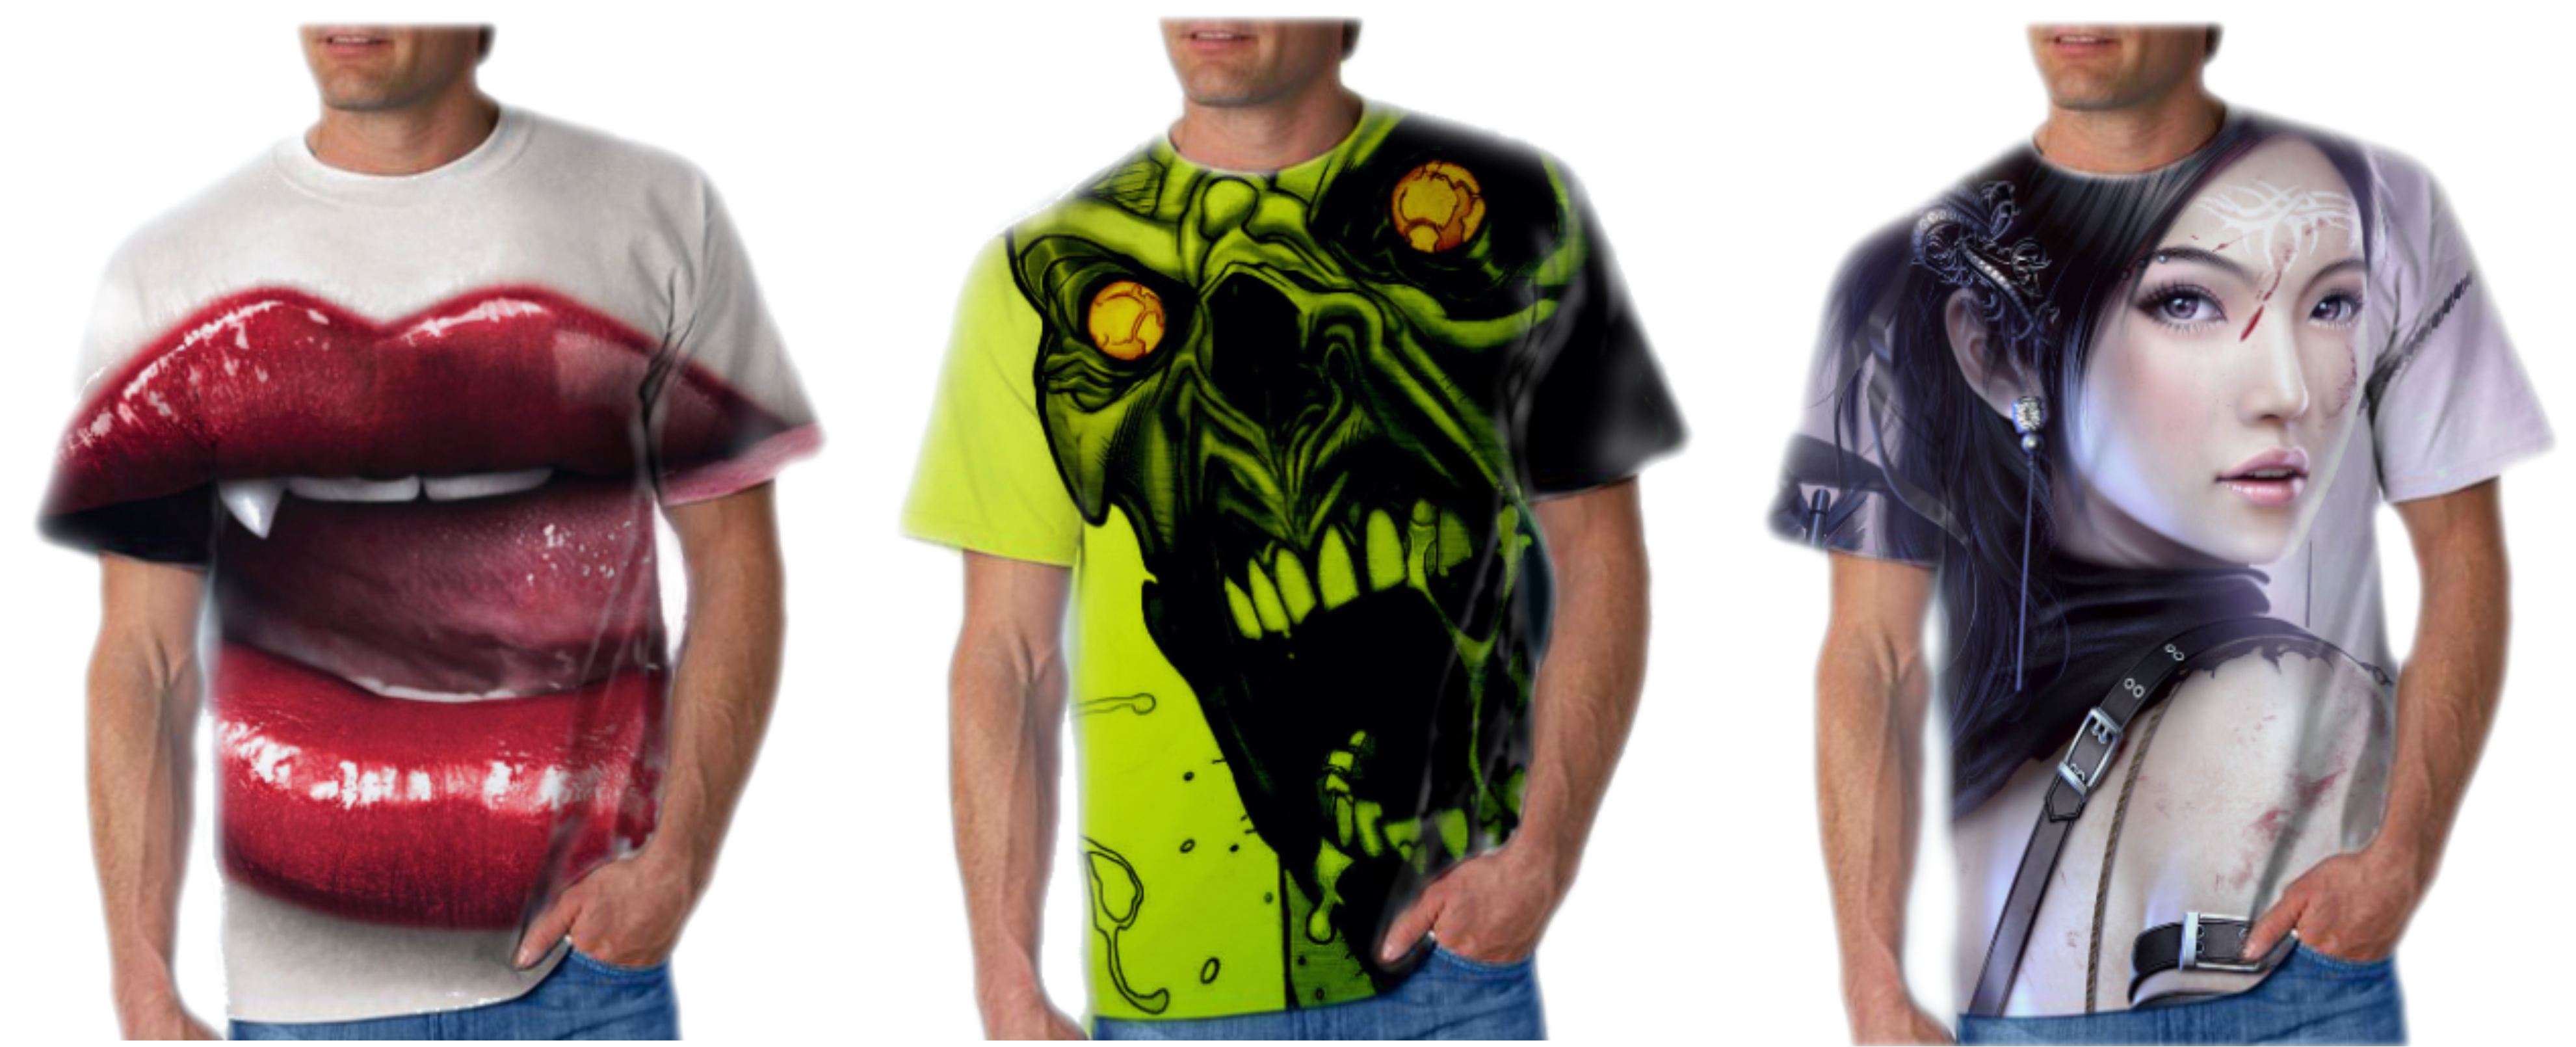 Image Gallery Sublimation Shirts